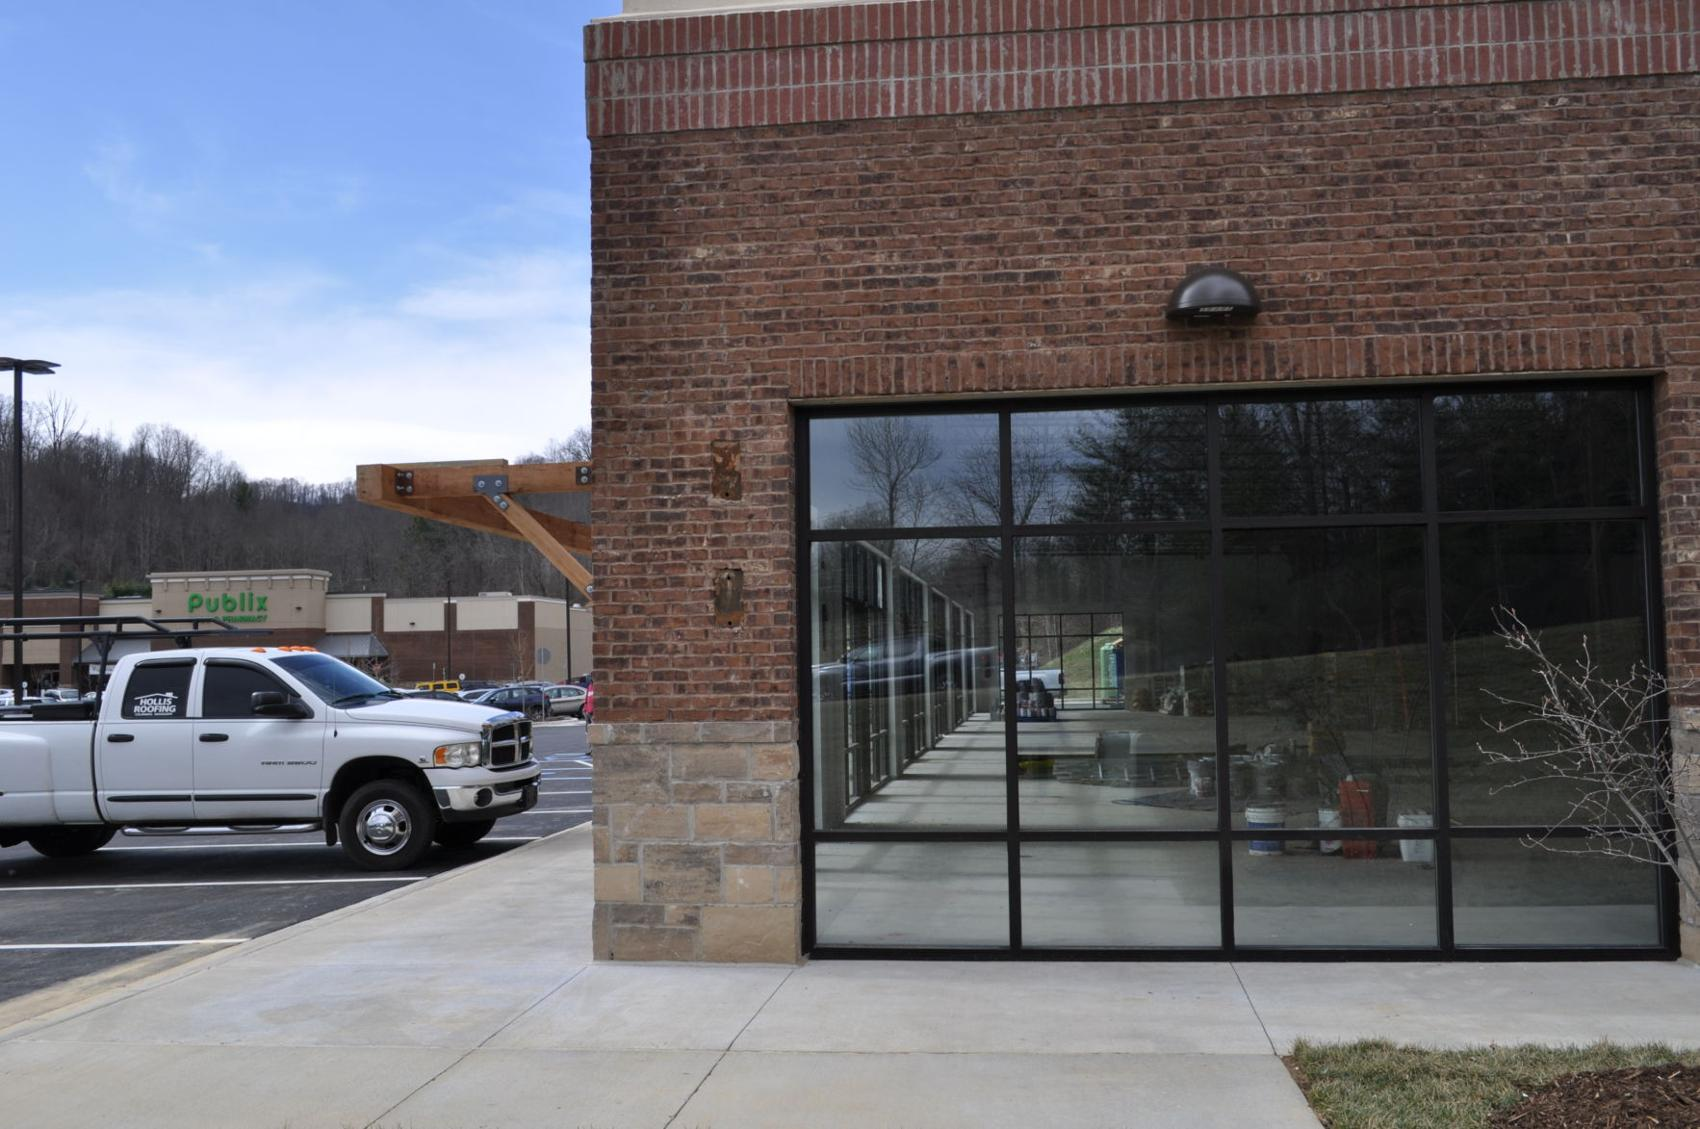 Retail tenants in Waynesville Pavilion to be announced in April